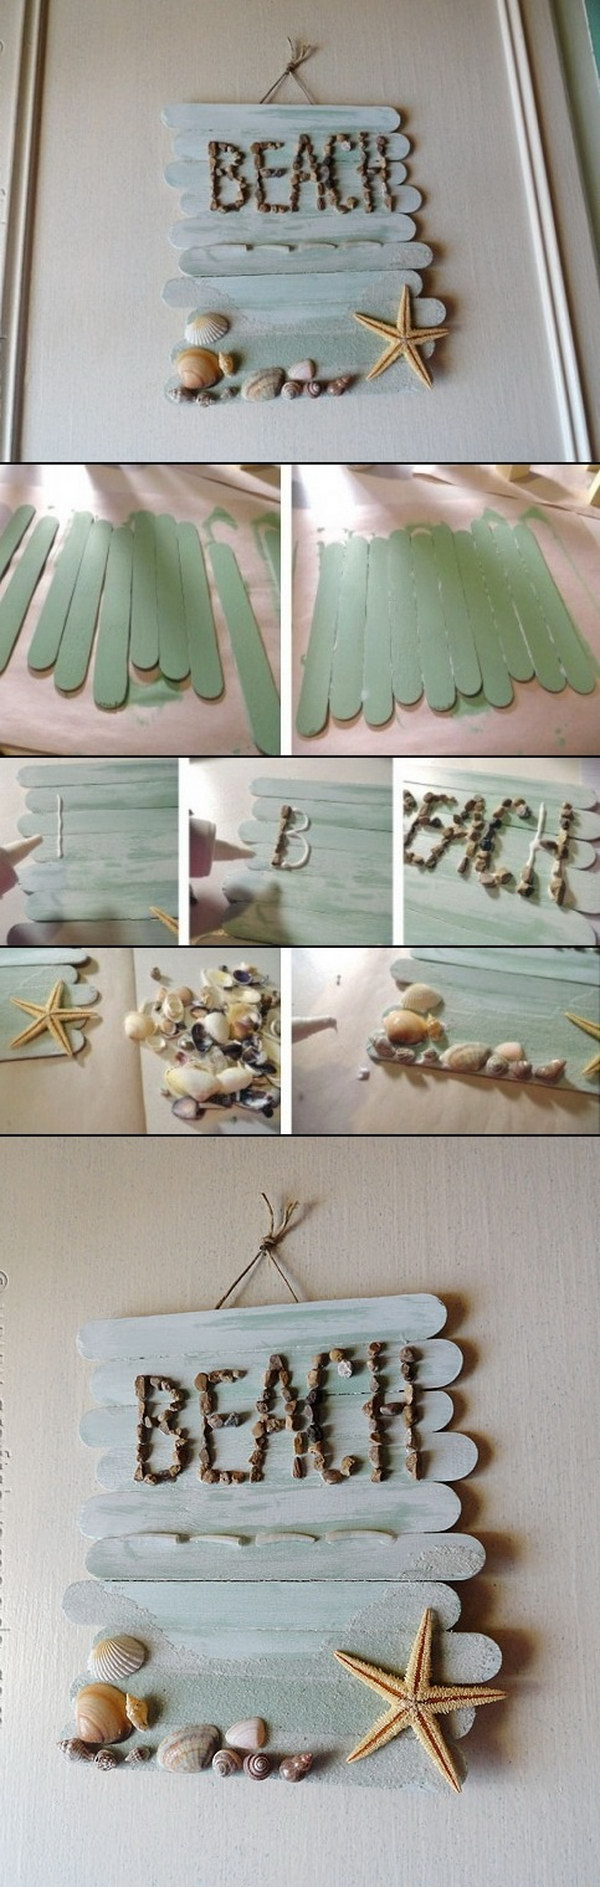 DIY Wall Art Decor Made with Popsick Sticks.